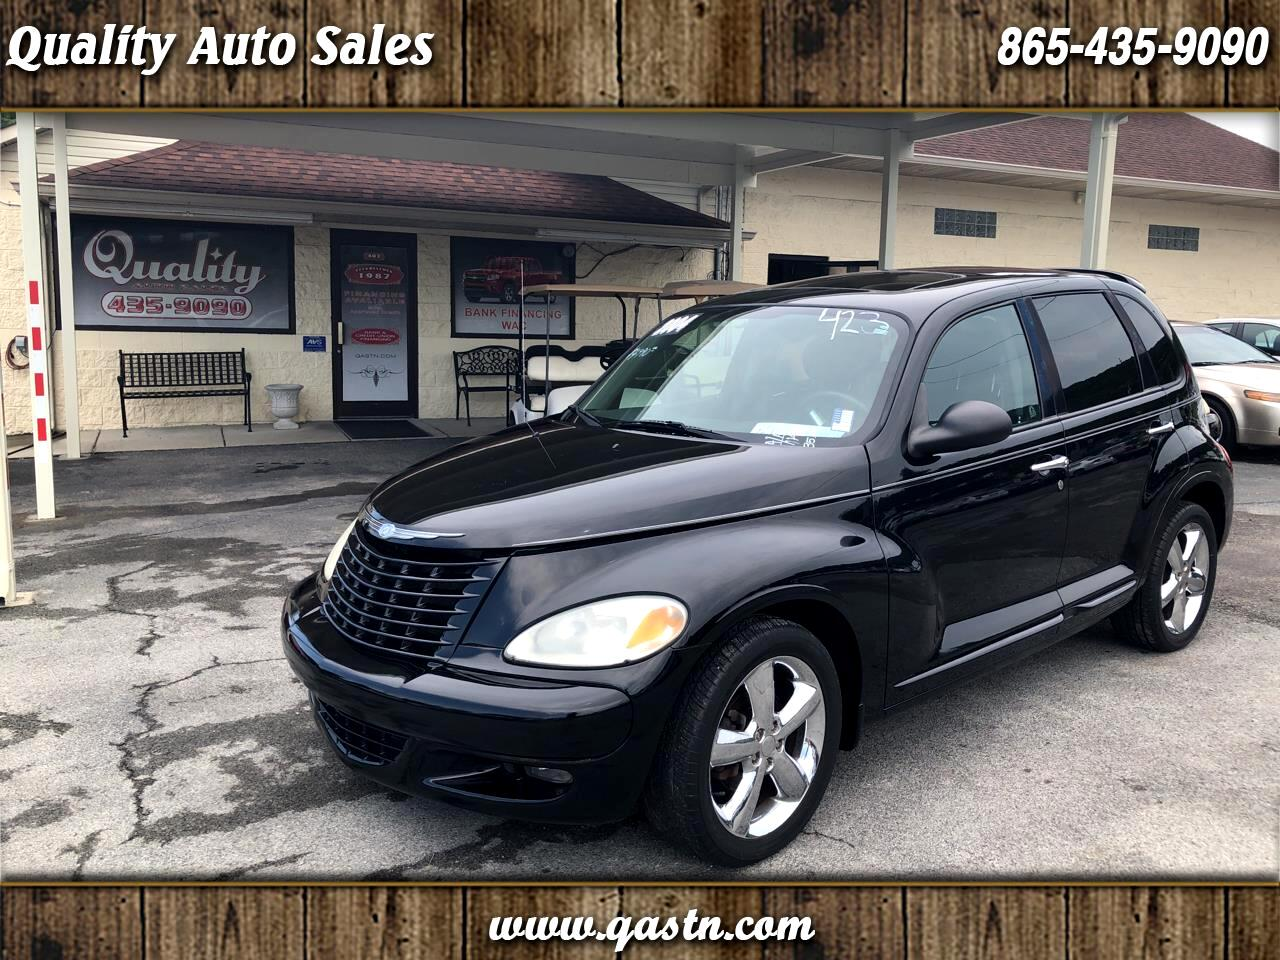 Chrysler PT Cruiser GT 2004